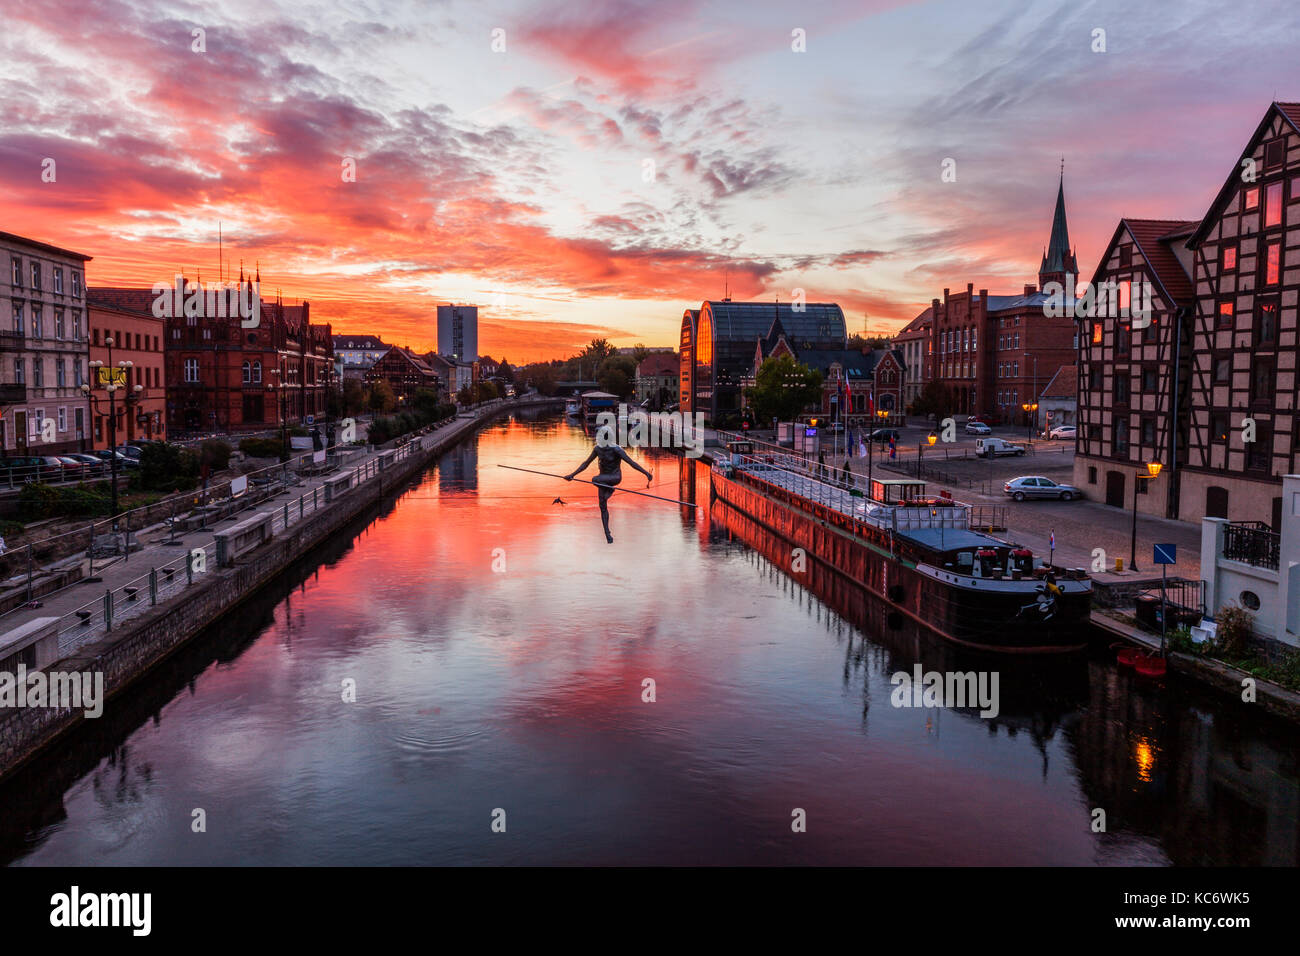 Poland, Kuyavian-Pomeranian, Bydgoszcz, Brda River, Dramatic sky reflecting in water surface - Stock Image